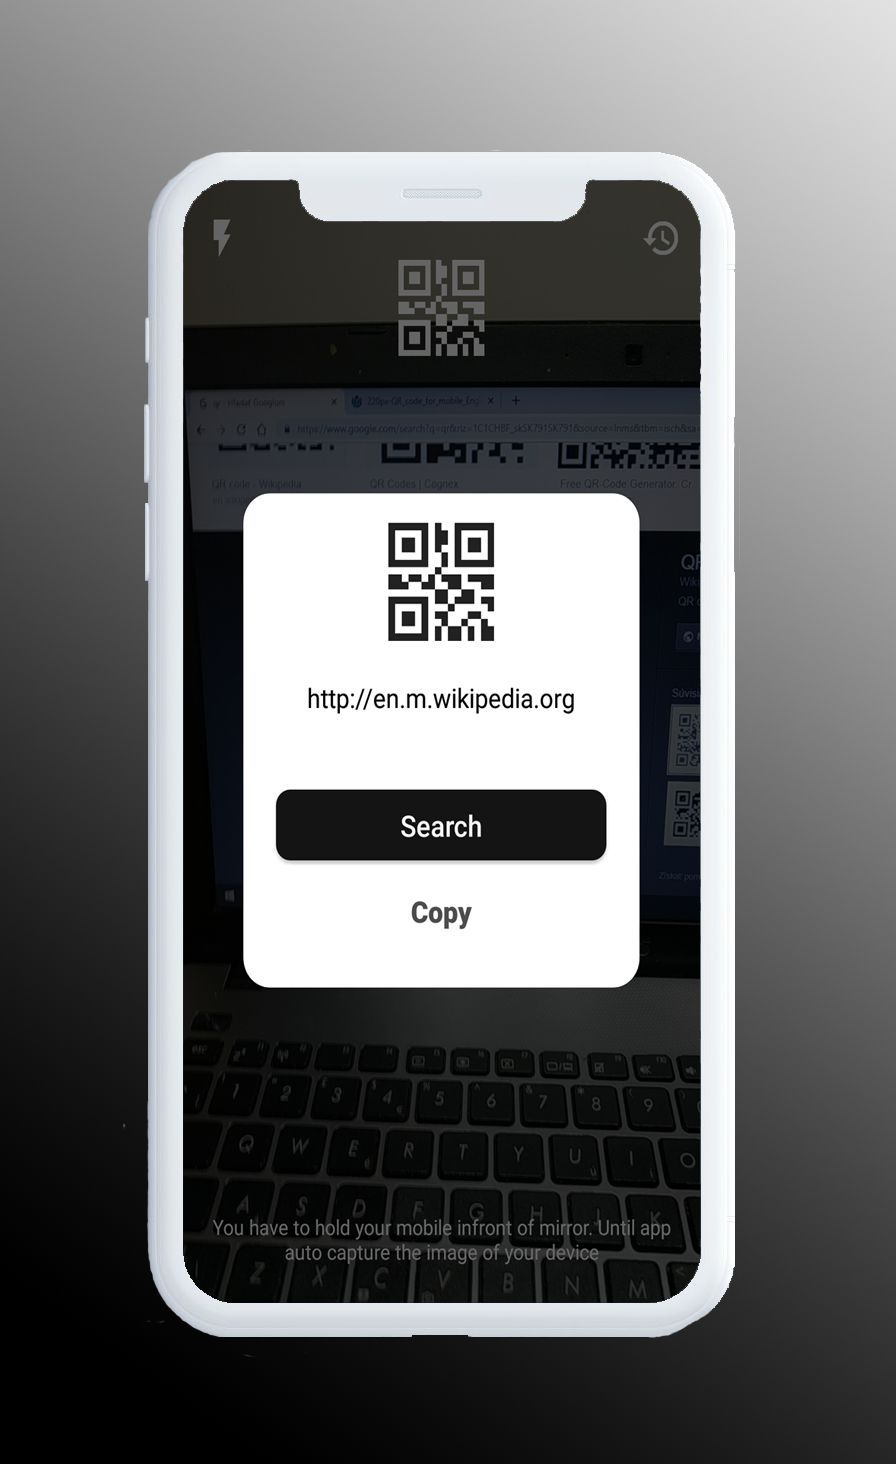 QR Scanner - Simple And Minimal Android App Screenshot 1